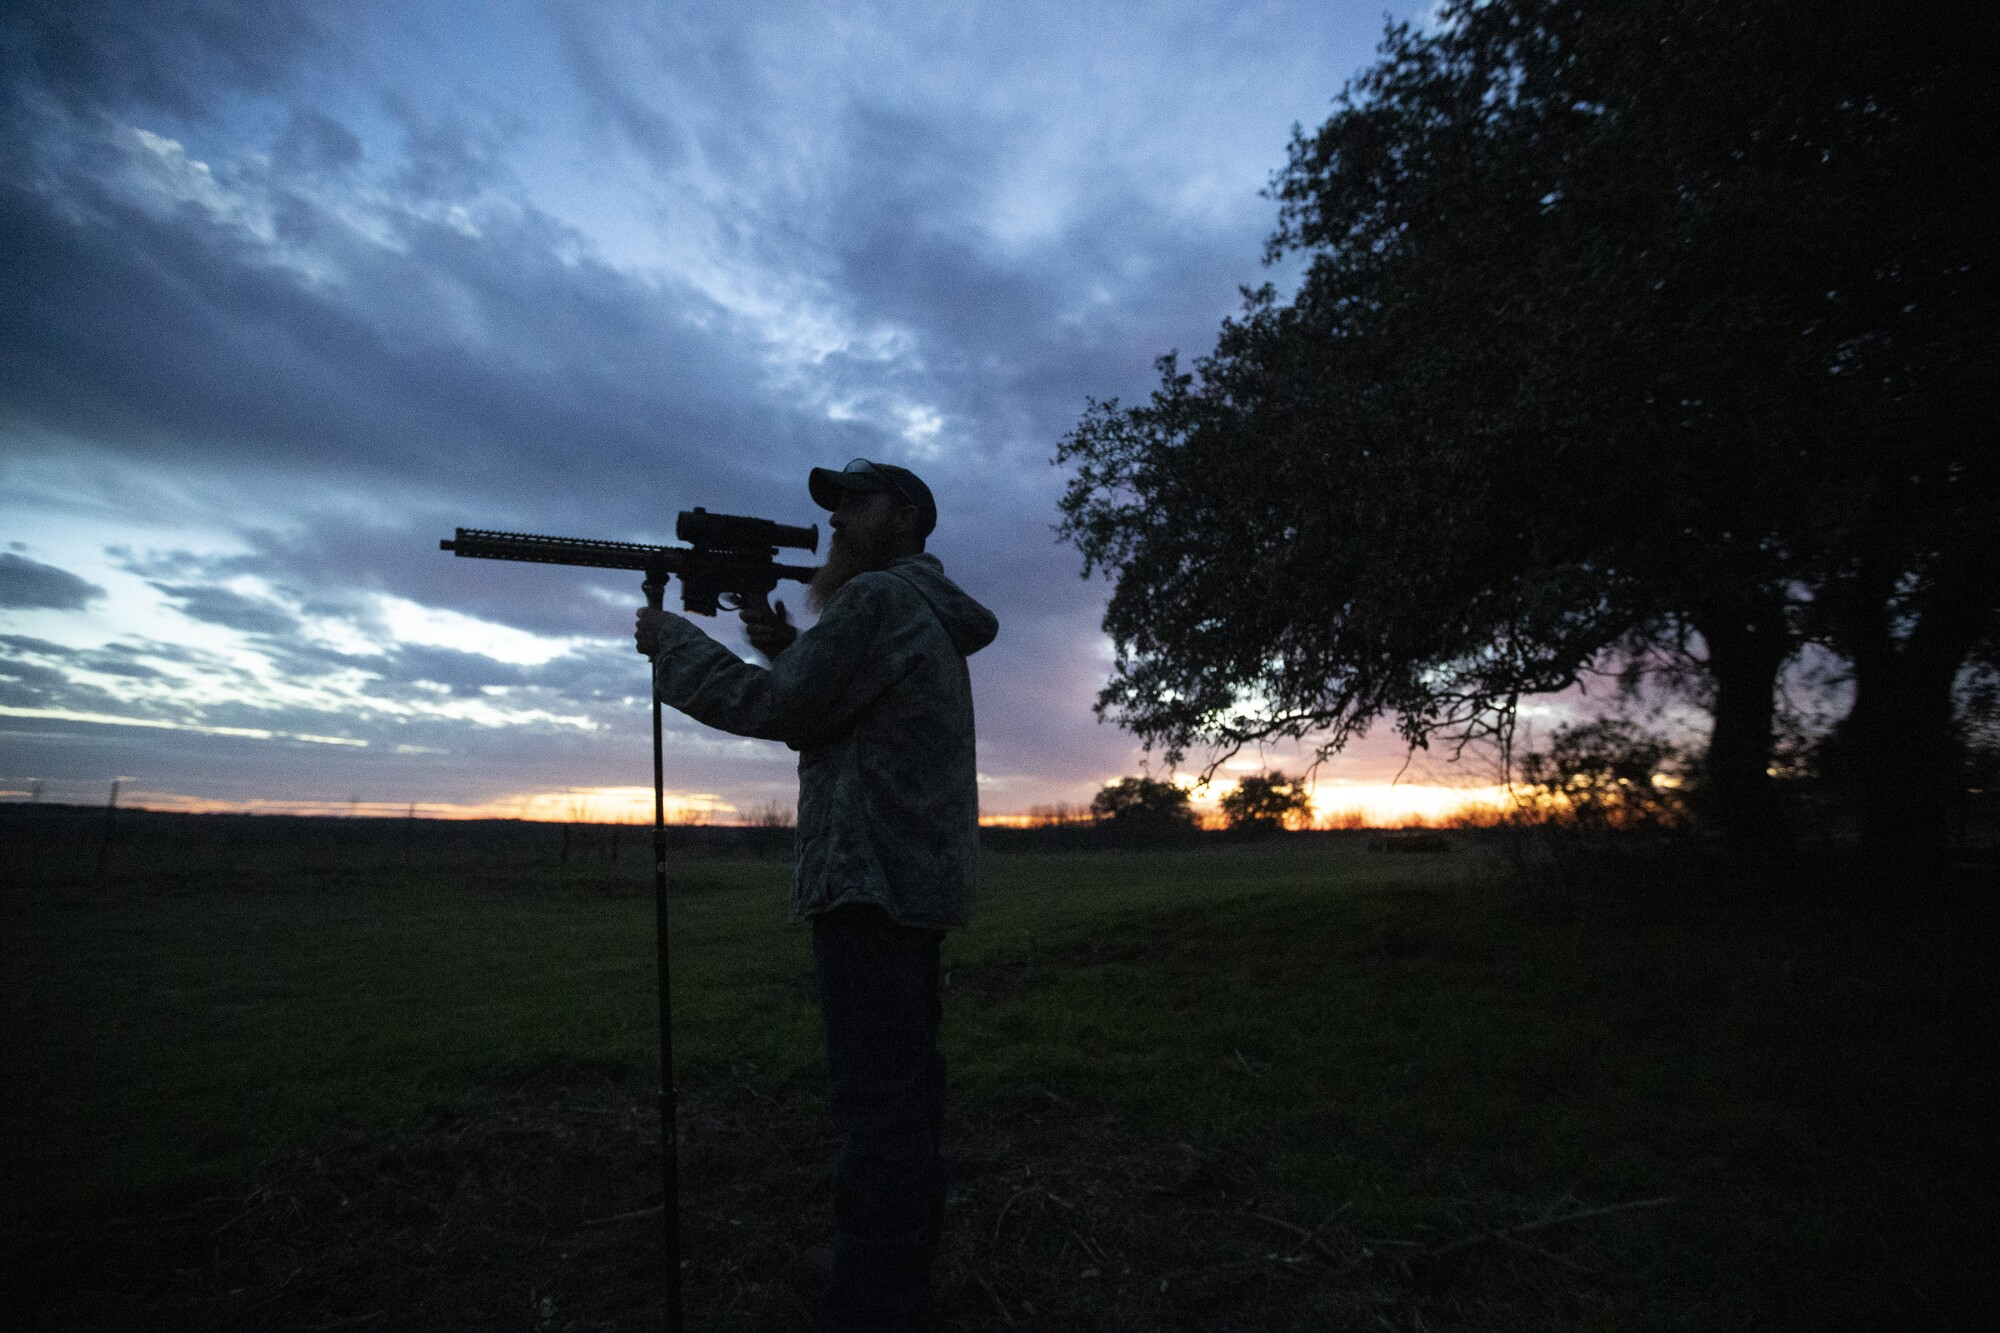 Fred Jones peers through the infrared scope on his rifle in rural Throckmorton County, Texas.